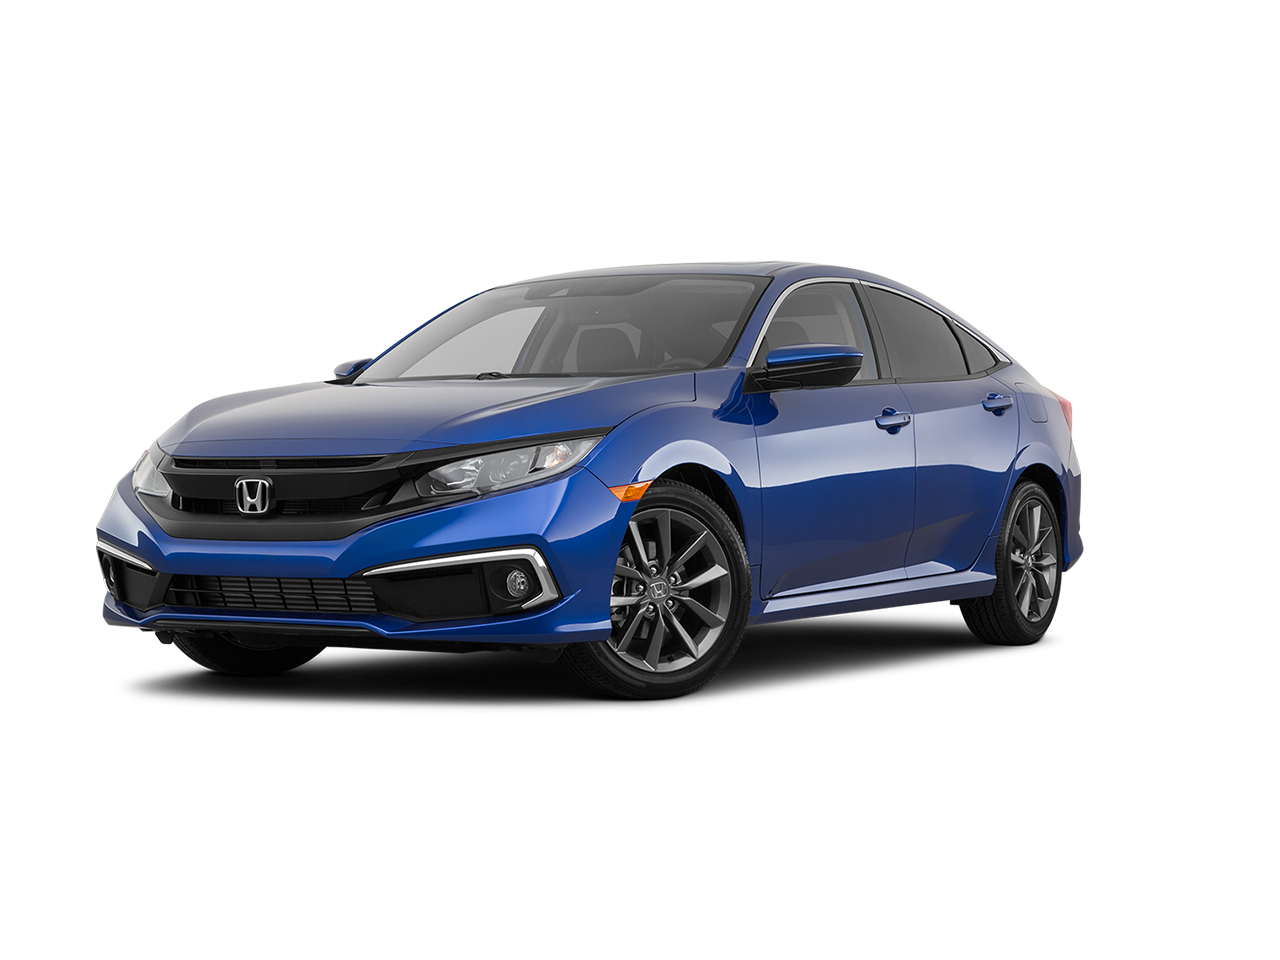 2020 Civic EX Sedan